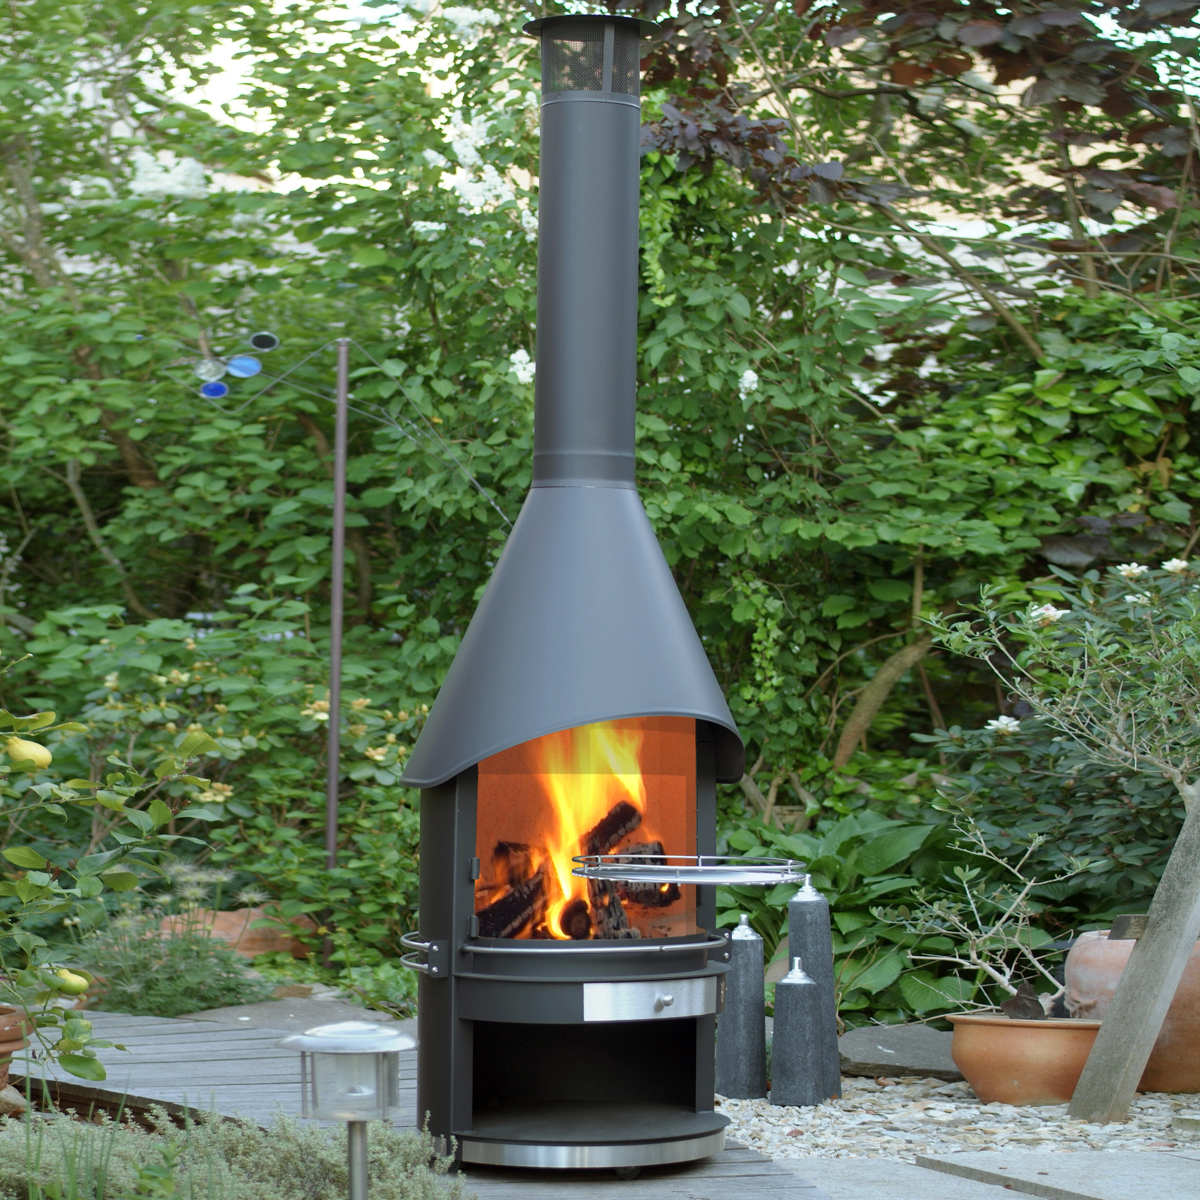 Outdoor fireplace and barbeque for summer entertaining by for Fireplace and bbq